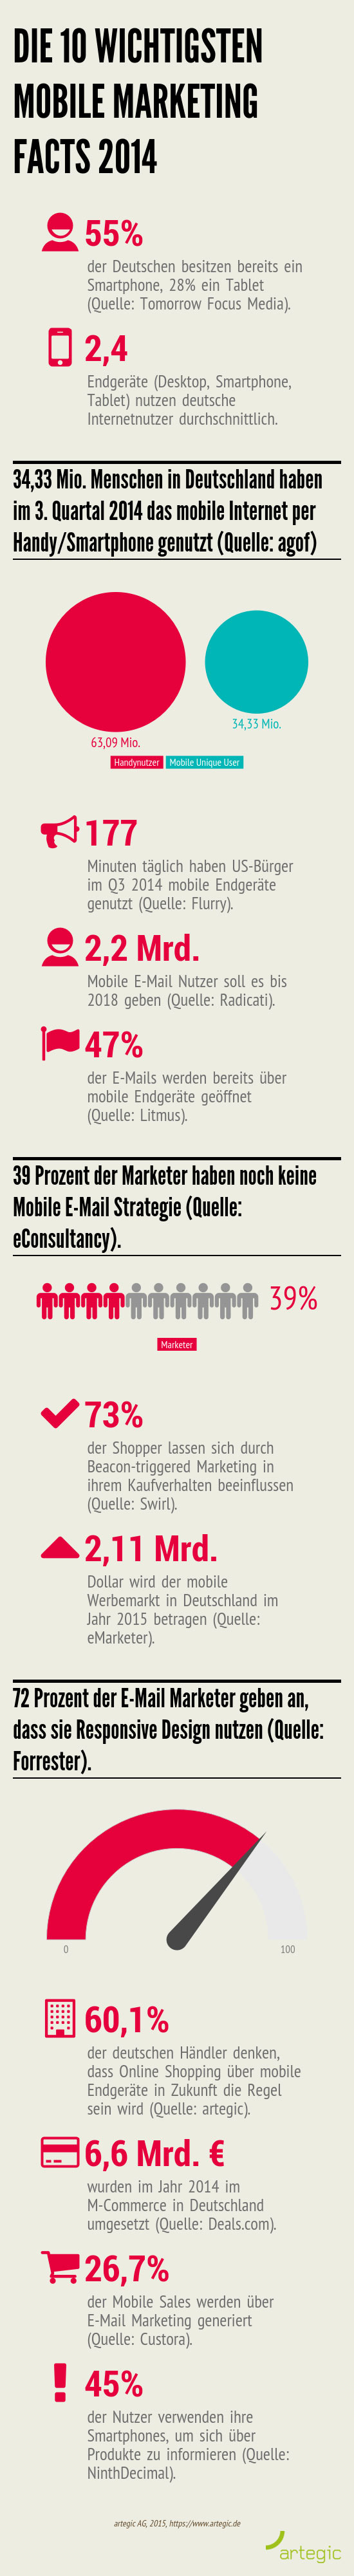 Die_10_wichtigsten_Mobile_Marketing_Facts_2014